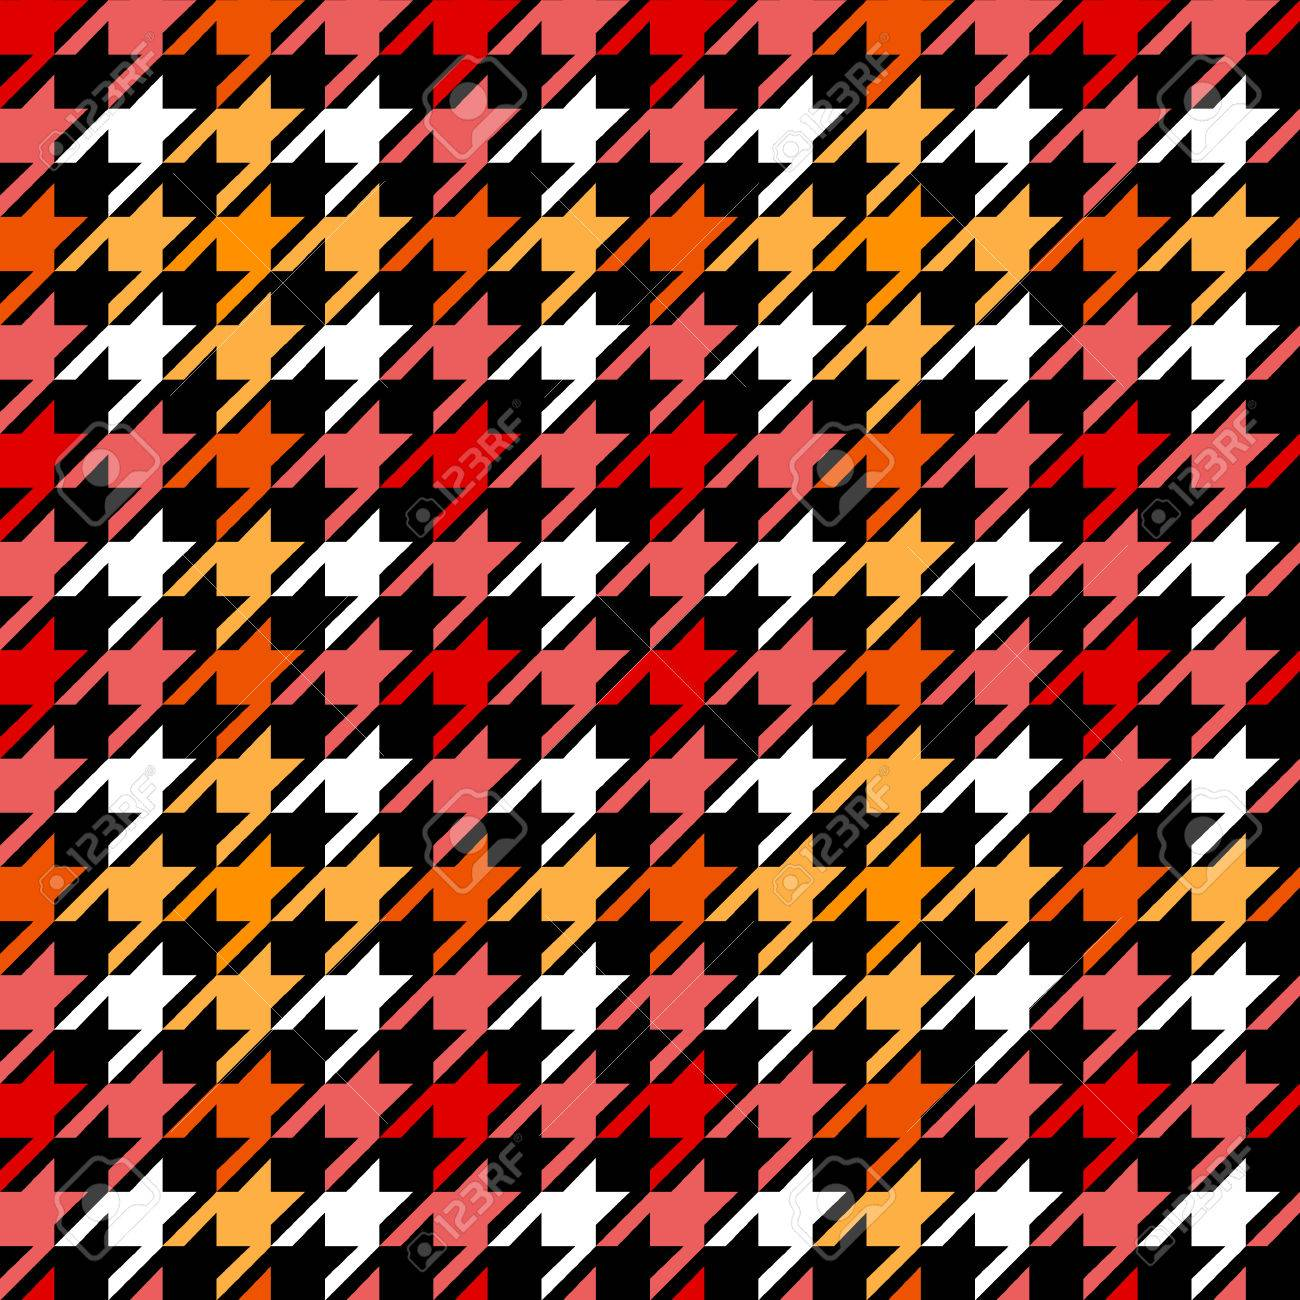 Seamless black and white checkered texture stock images image - Houndstooth Checkered Seamless Pattern In Red Yellow Black And White Vector Background Stock Vector